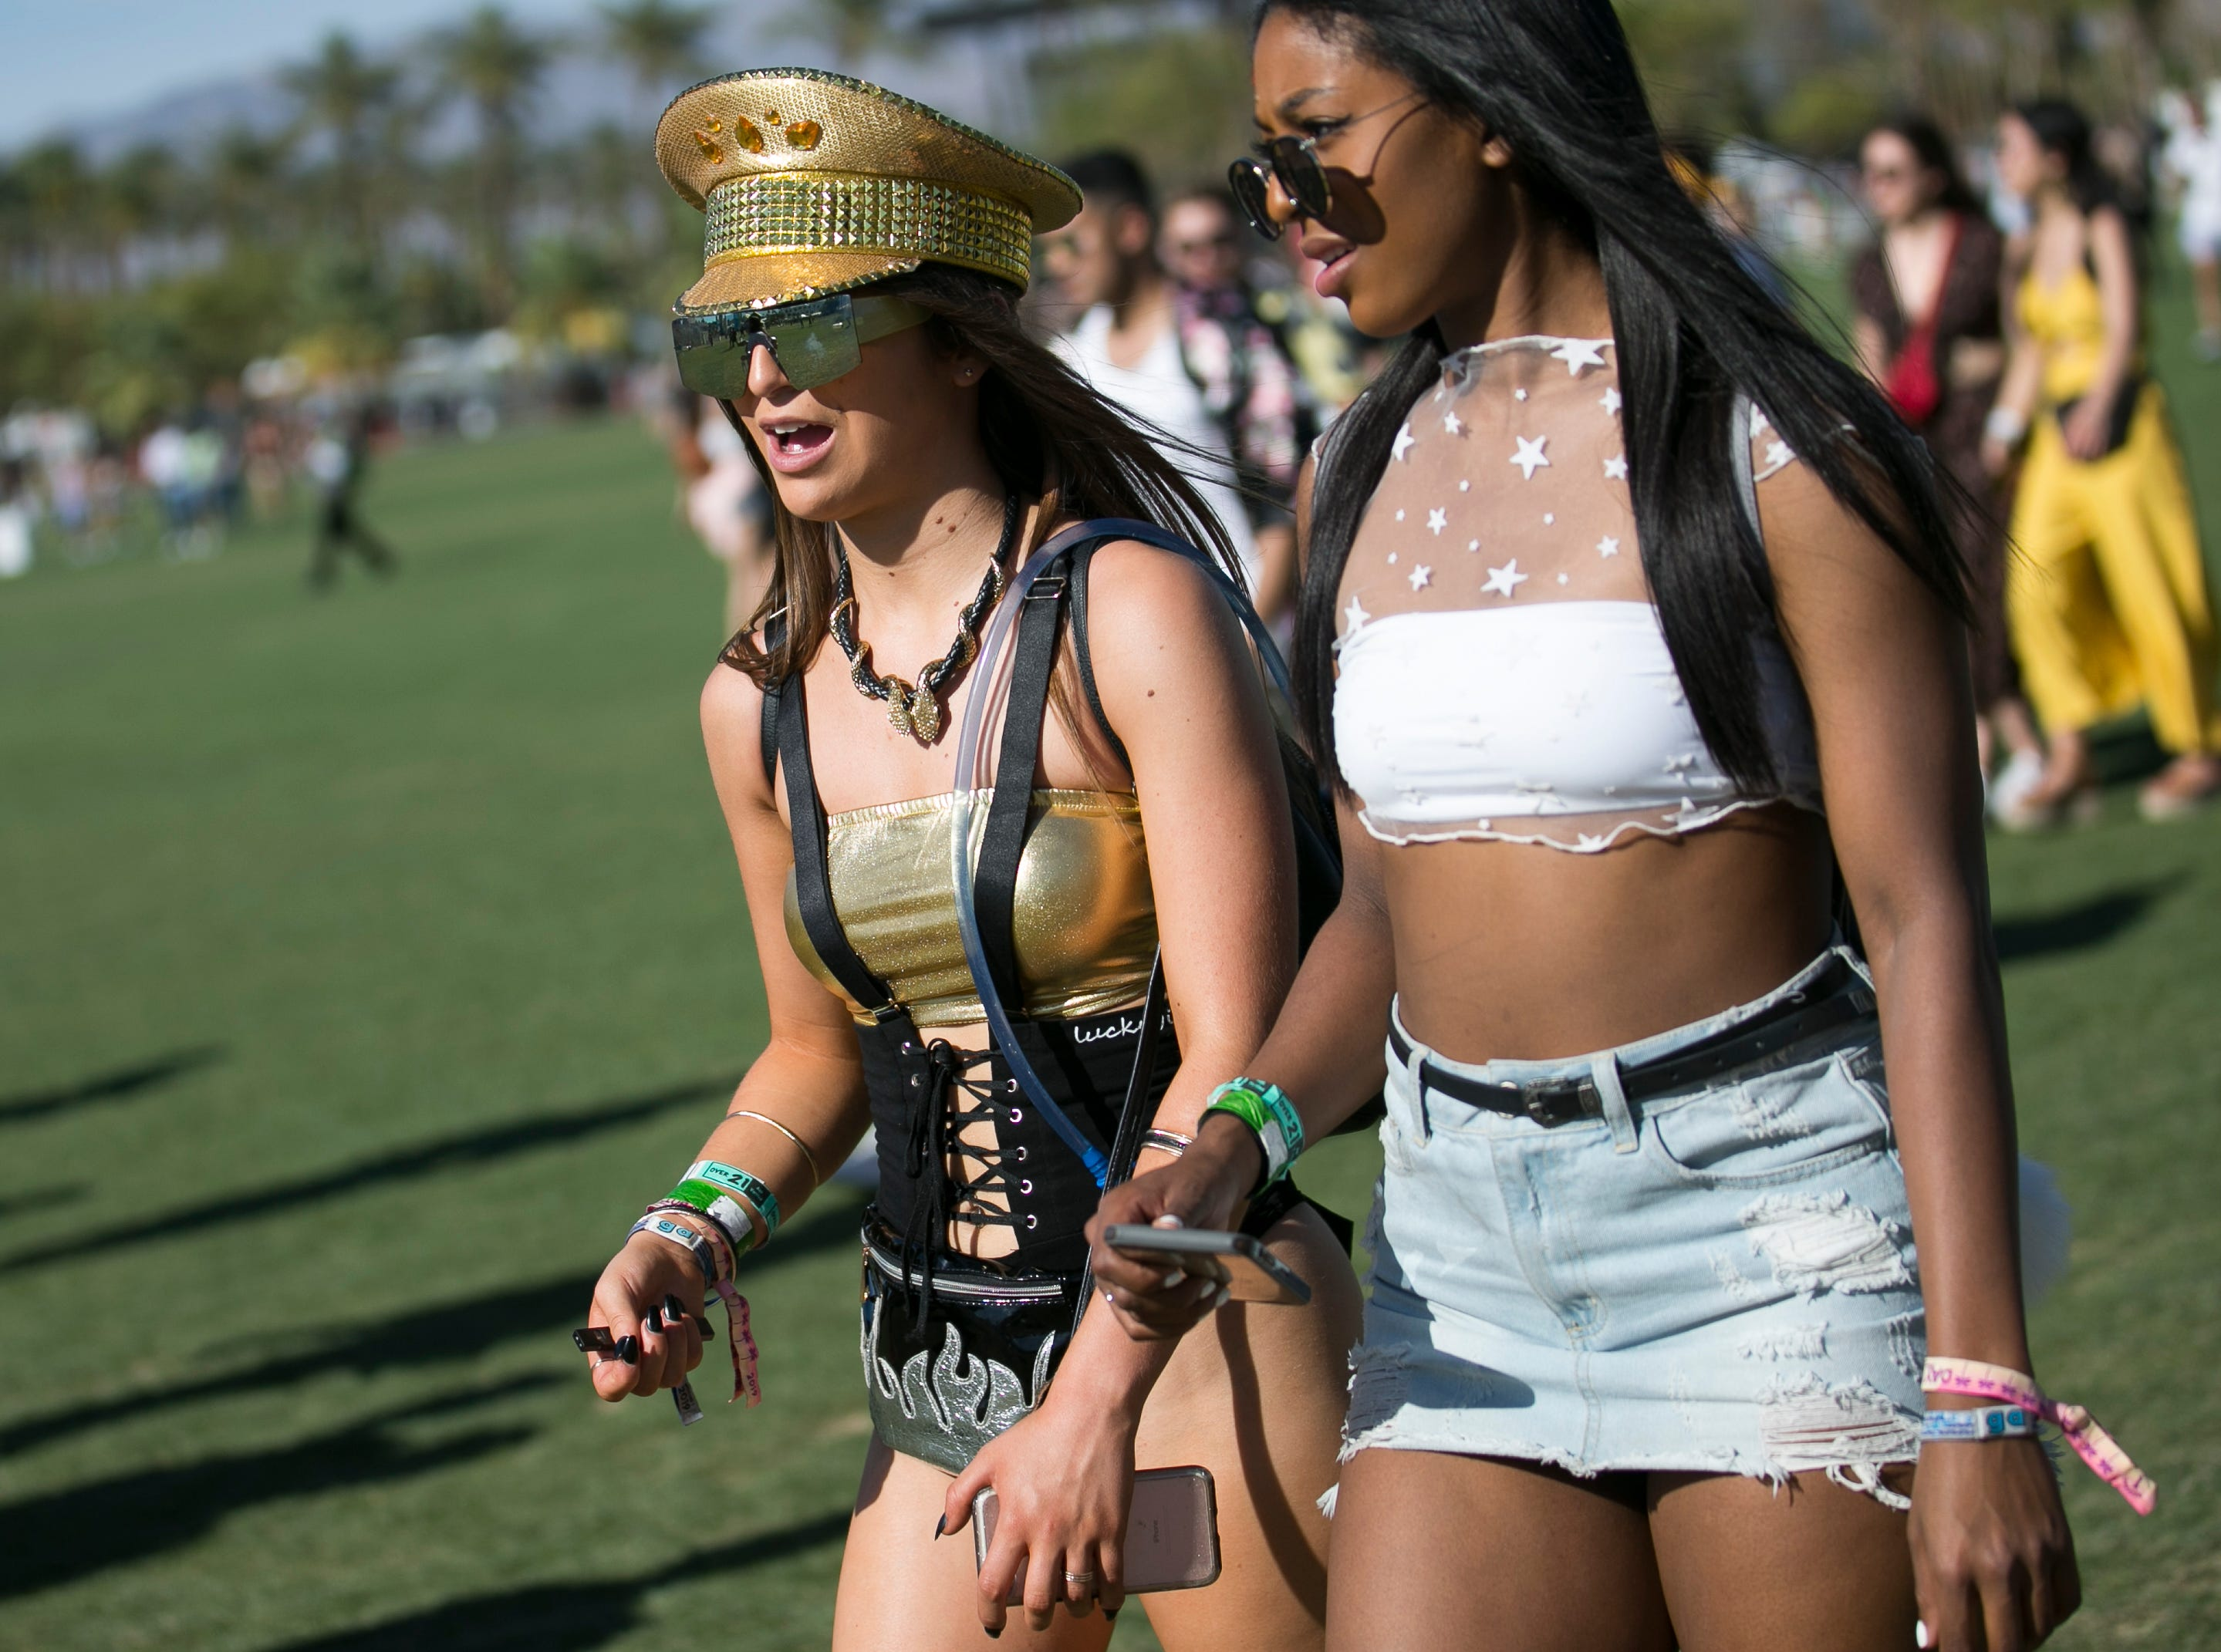 Jenna Udell (left) and Starla Upshaw (right) walk through the festival grounds at Coachella 2019 in Indio, Calif. on Sat. April 13, 2019.